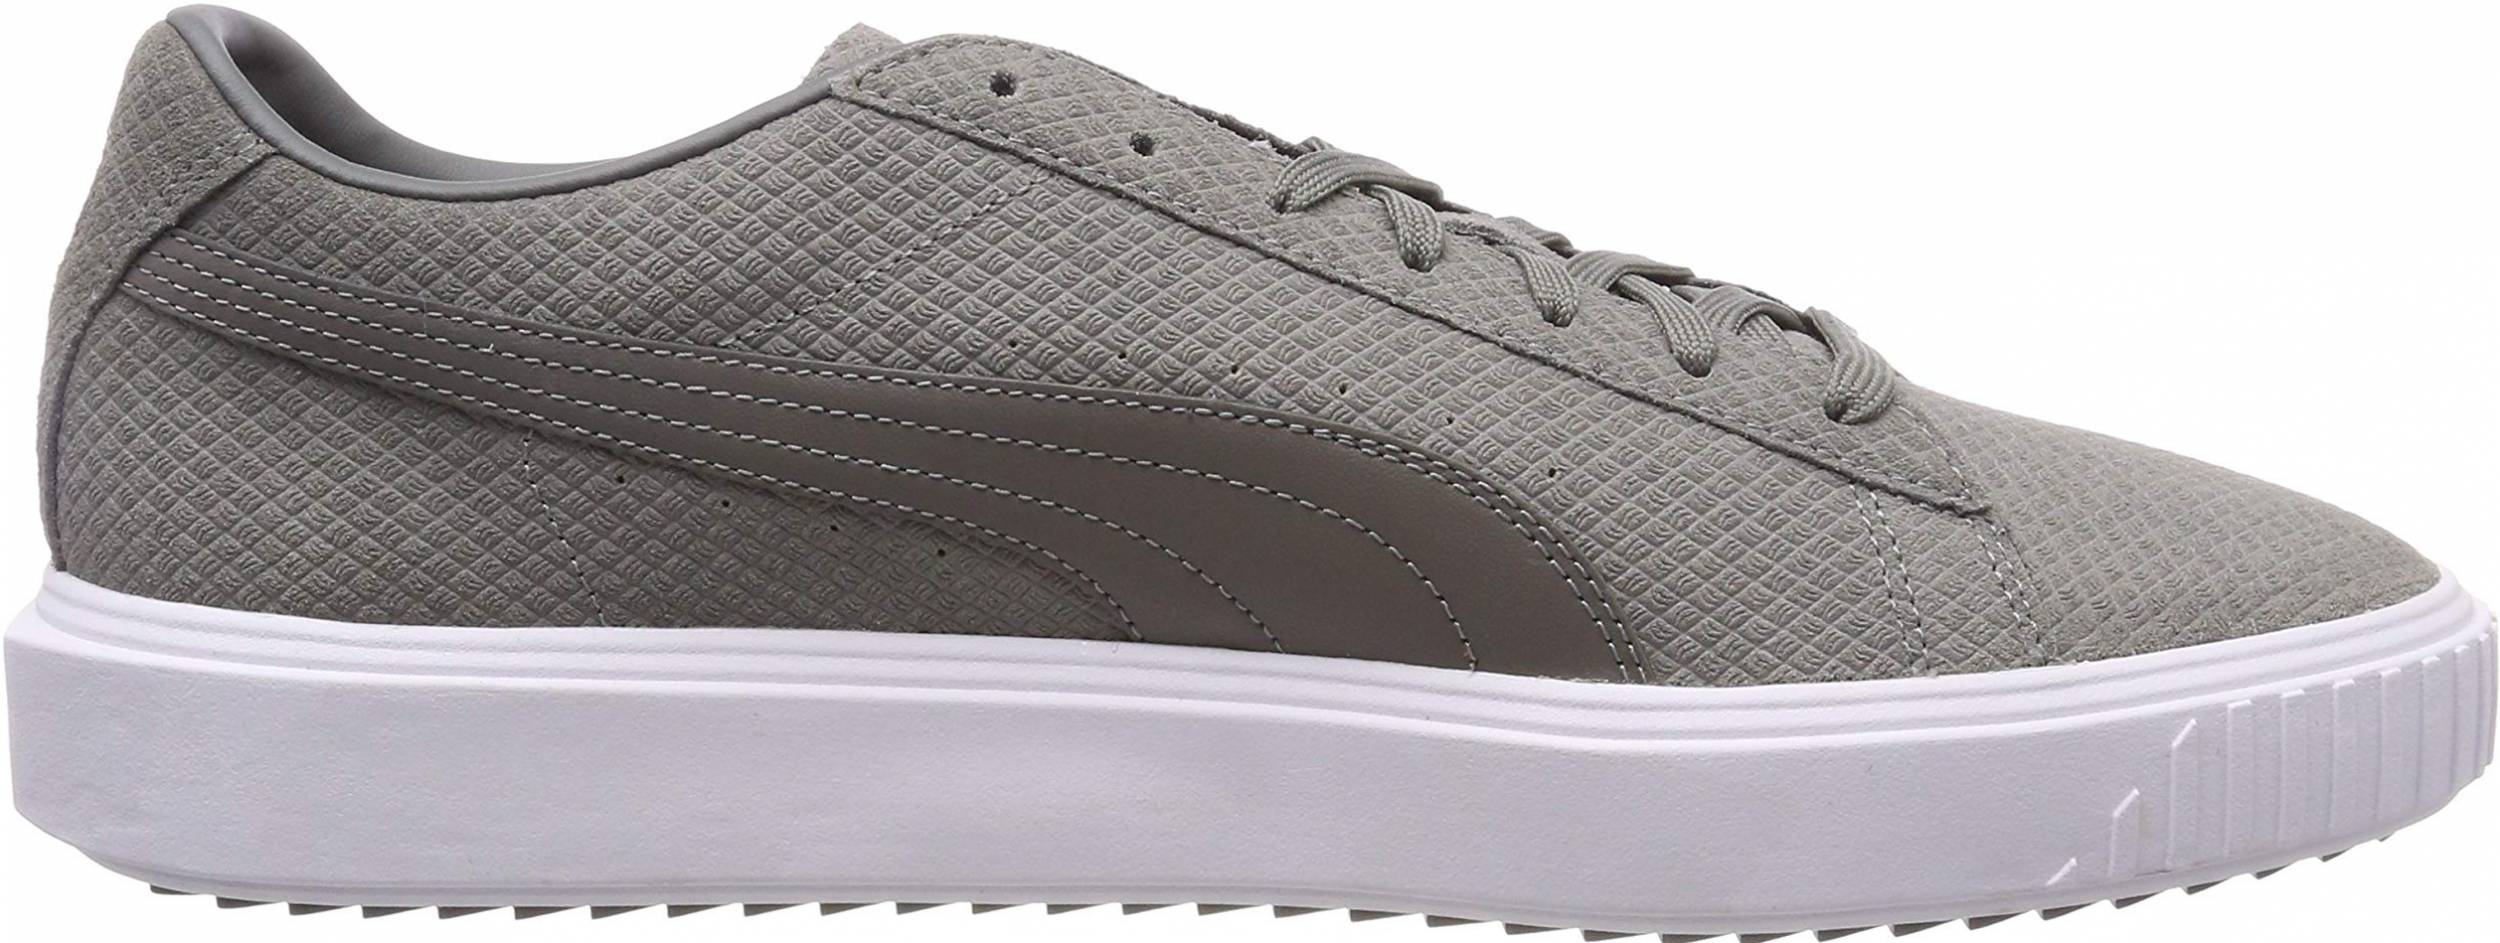 Only £35 + Review of Puma Suede Breaker